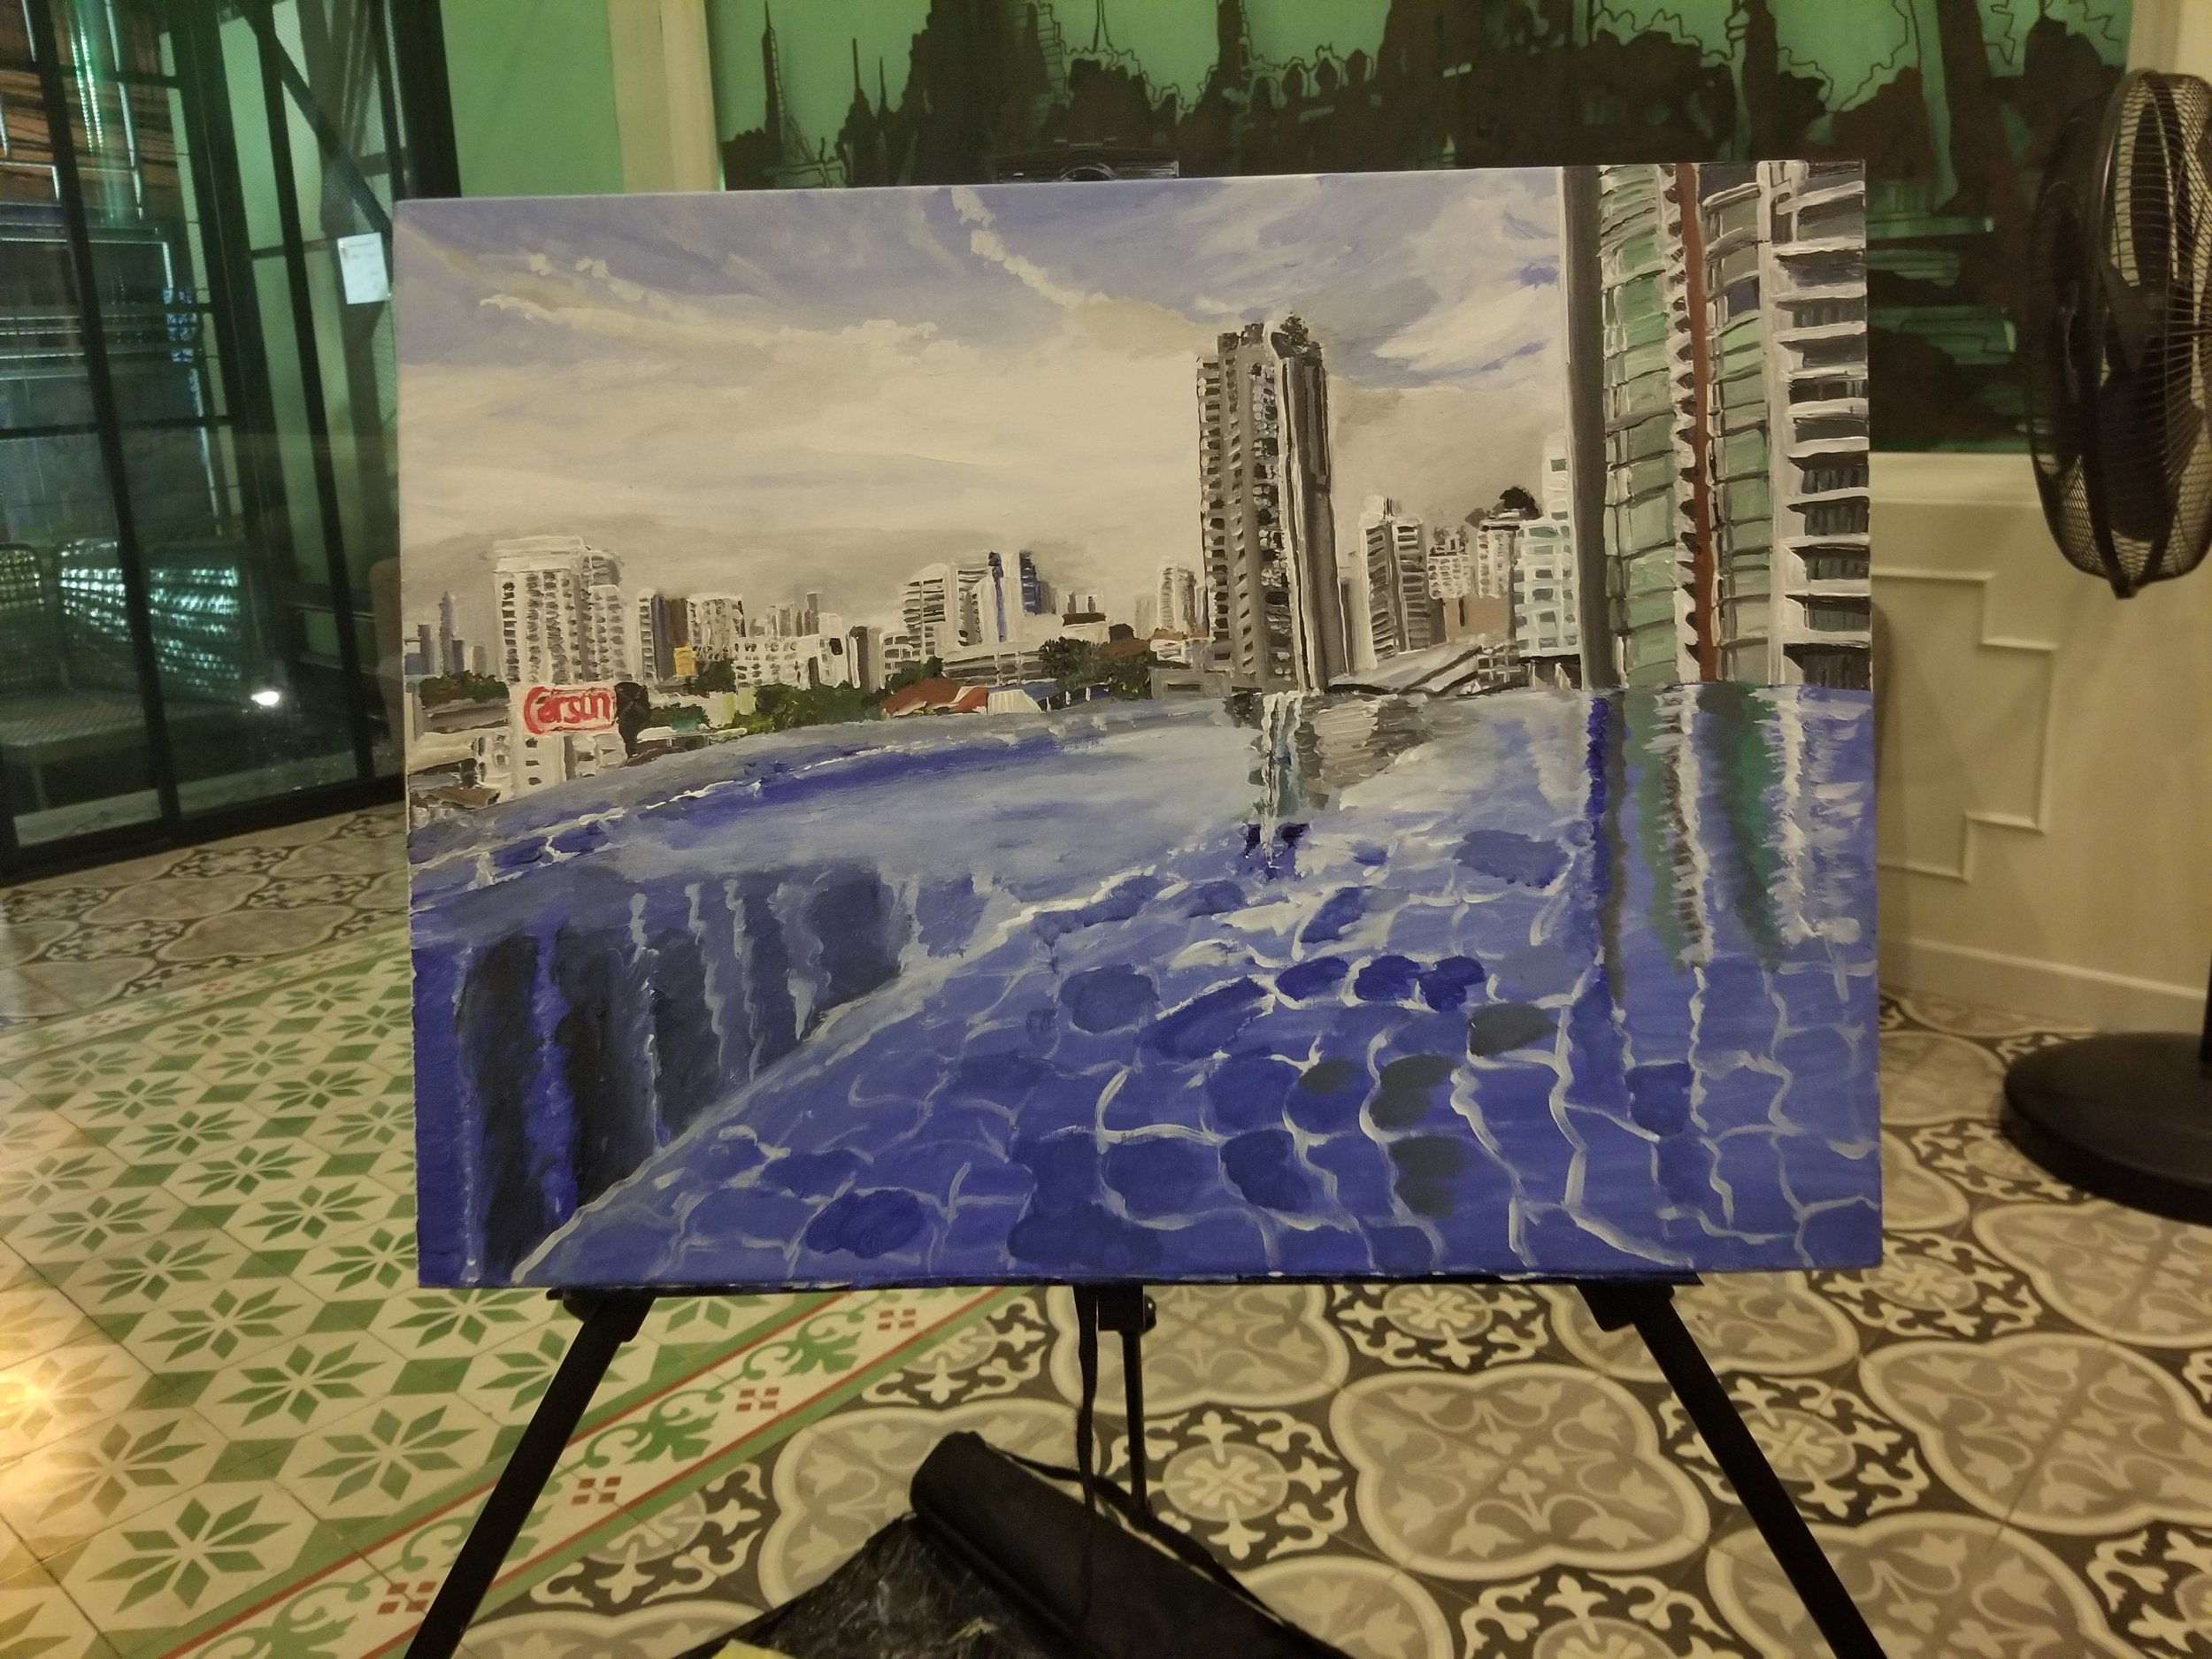 The new finish product painting of the city skyline of Bangkok, Thailand with infinity pool.